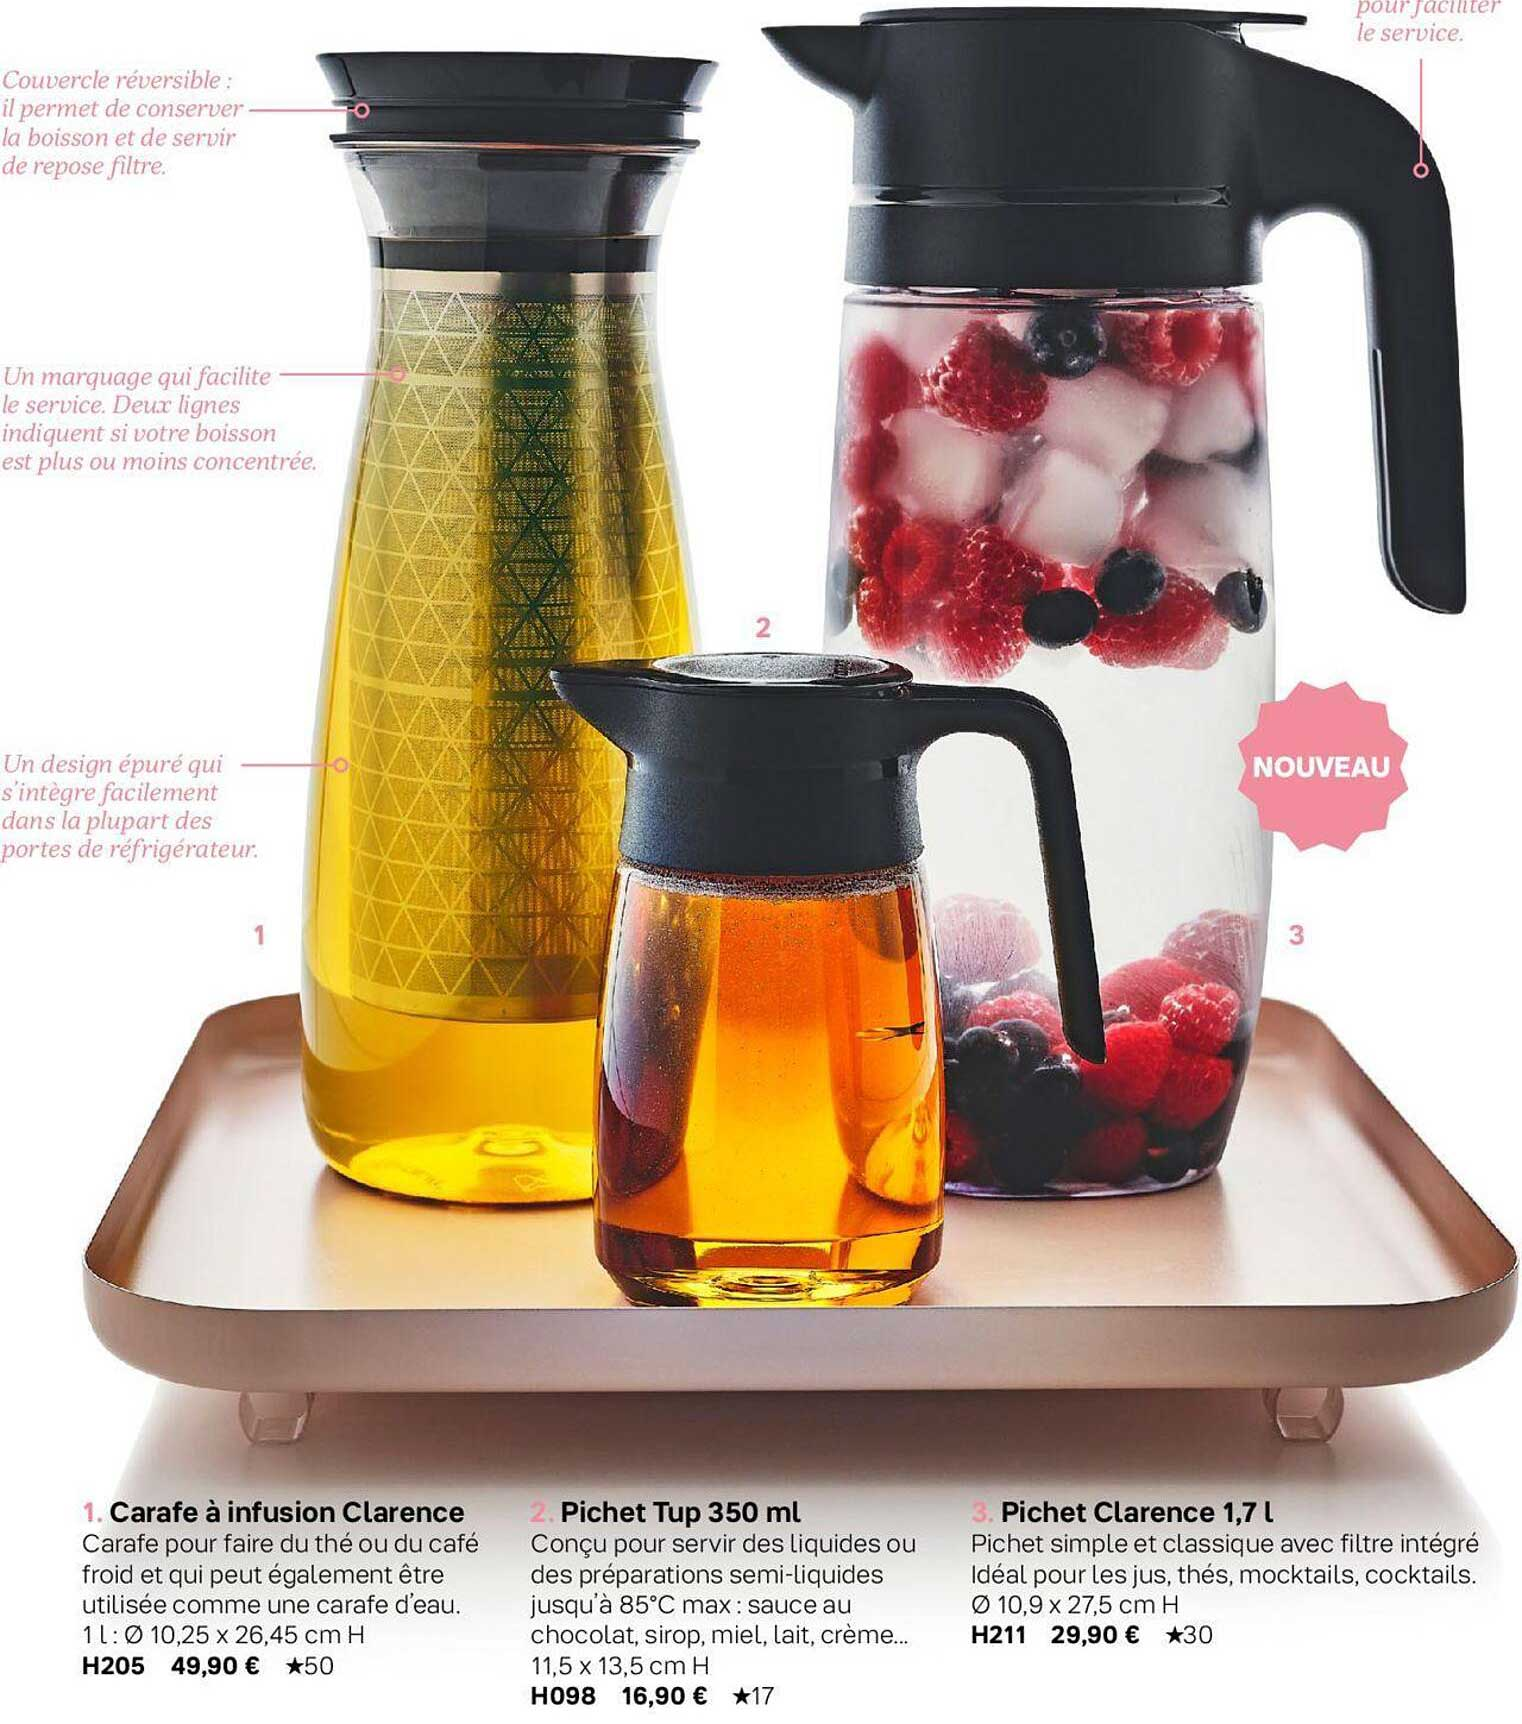 Tupperware Carafe A Infusion Clarence, Pichet Tup350ml, Pichet Clarence 1,7l